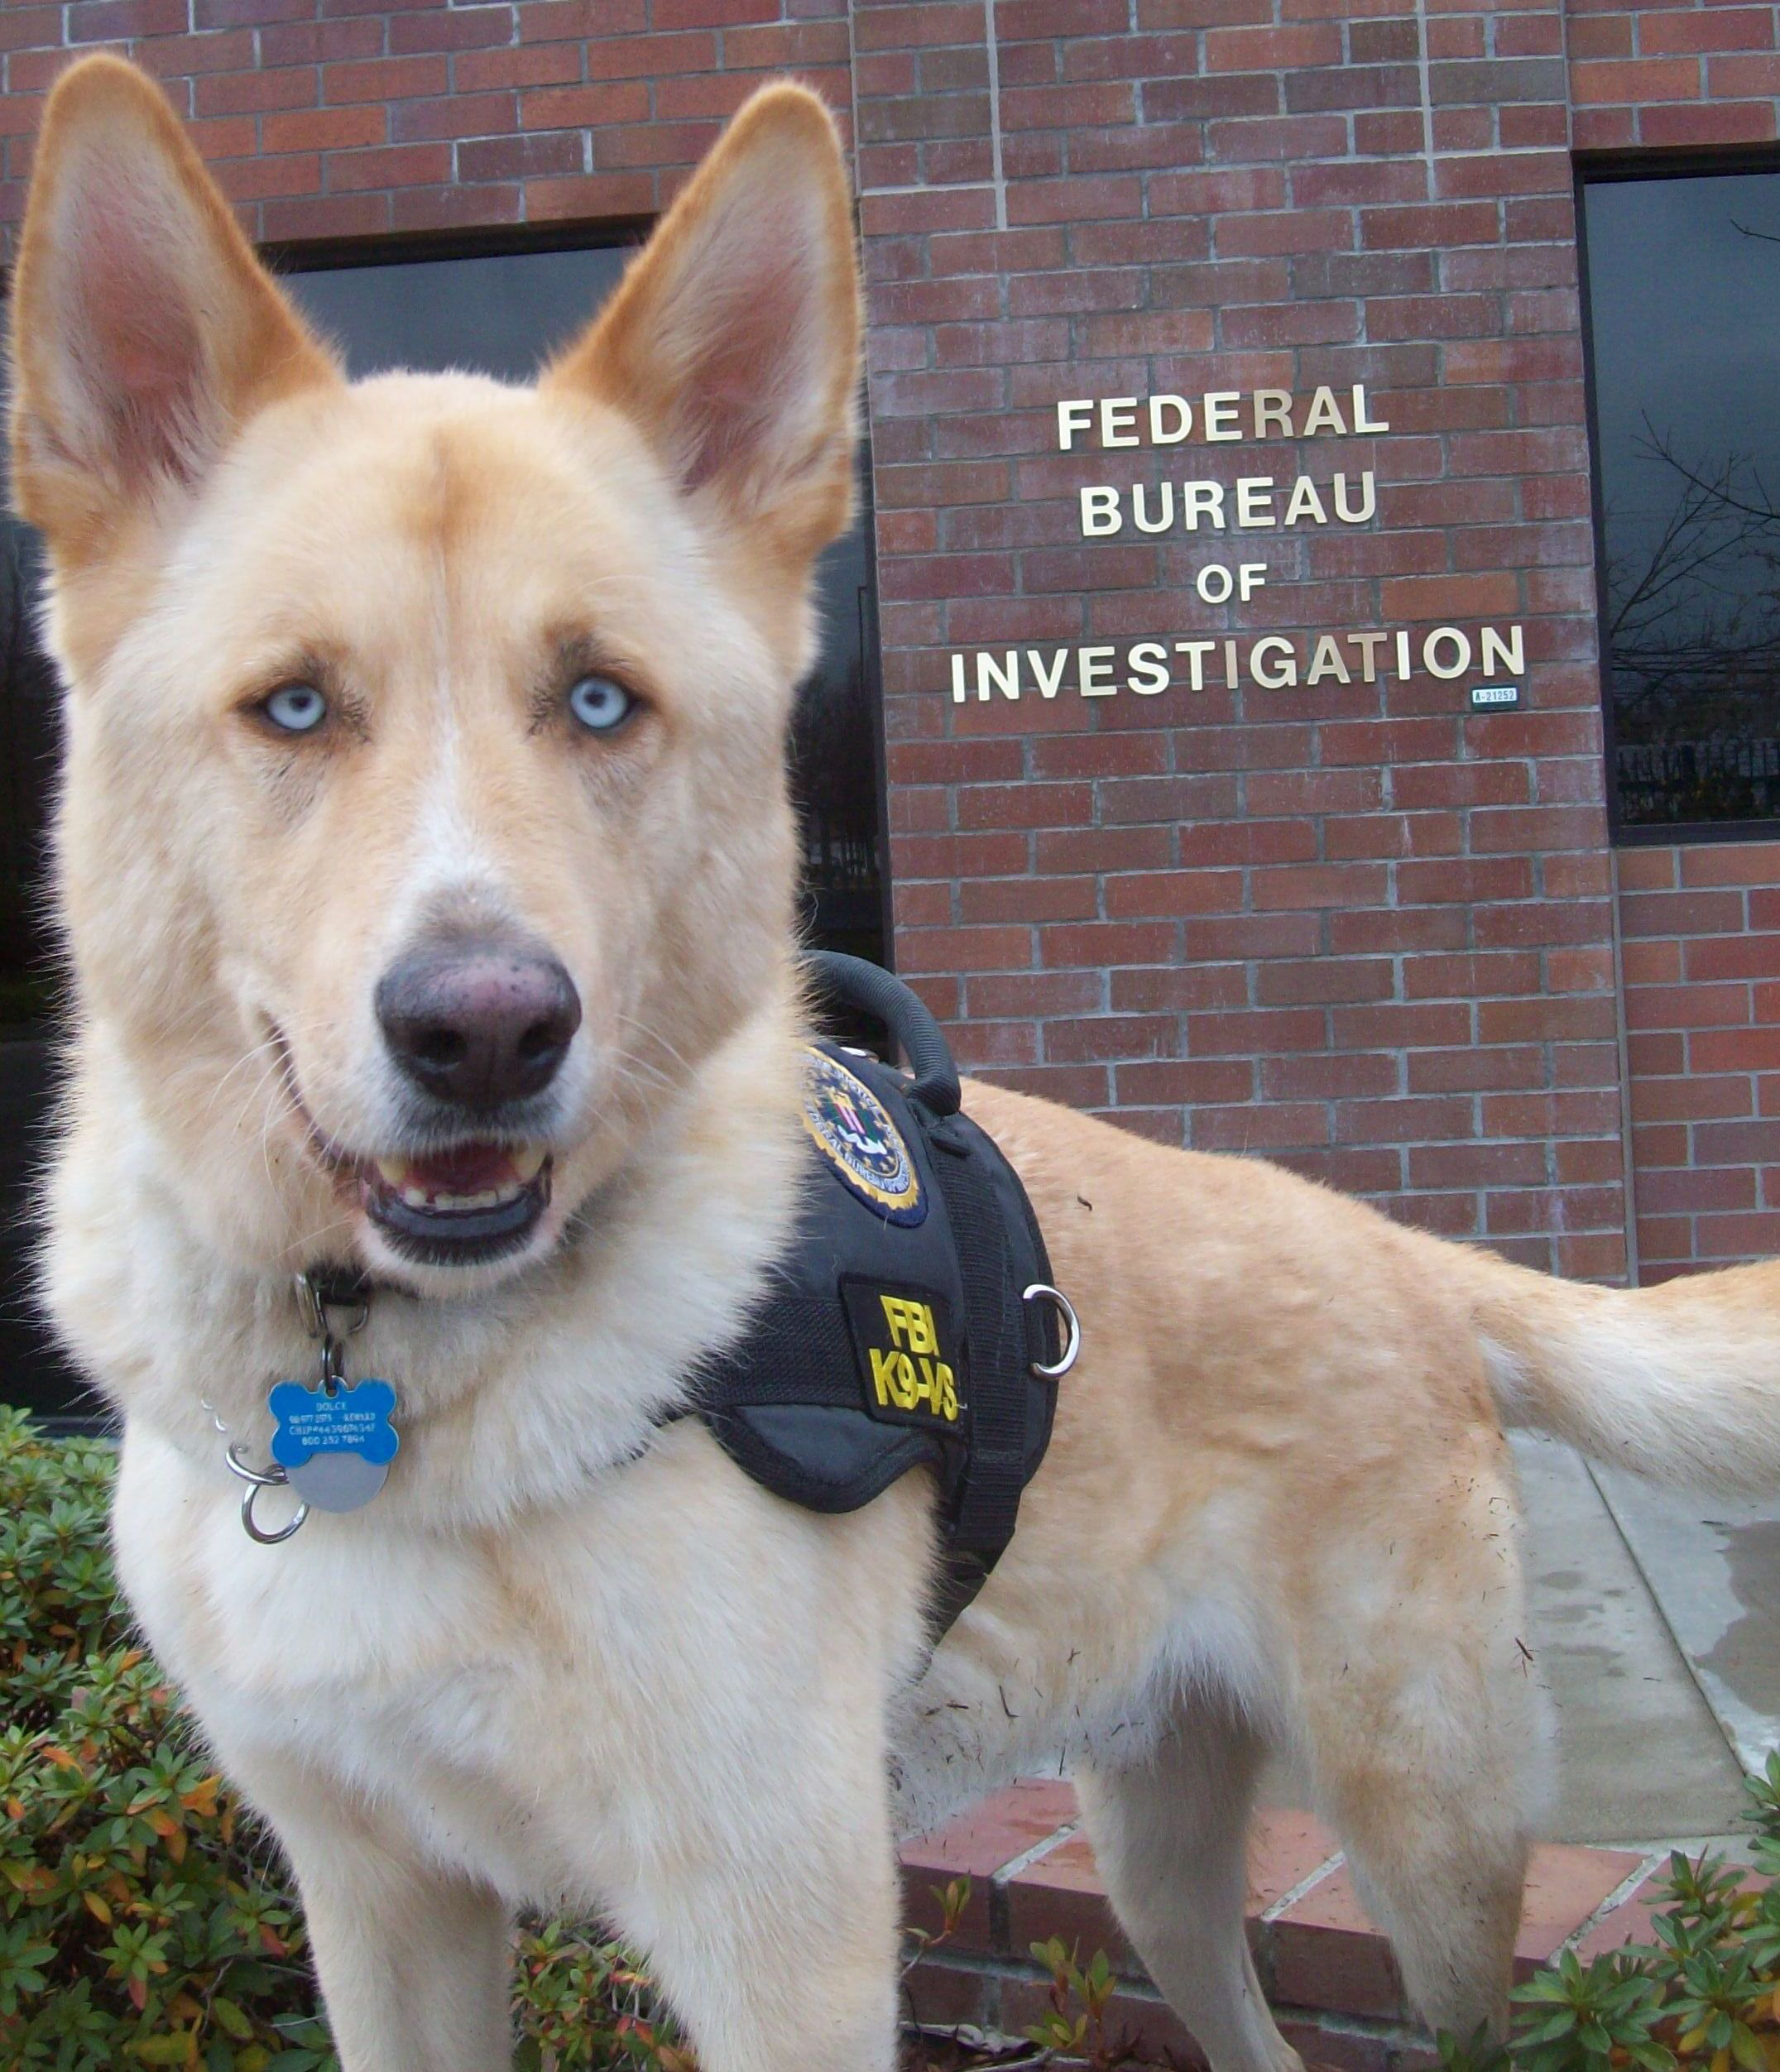 FBI K9 in his vest